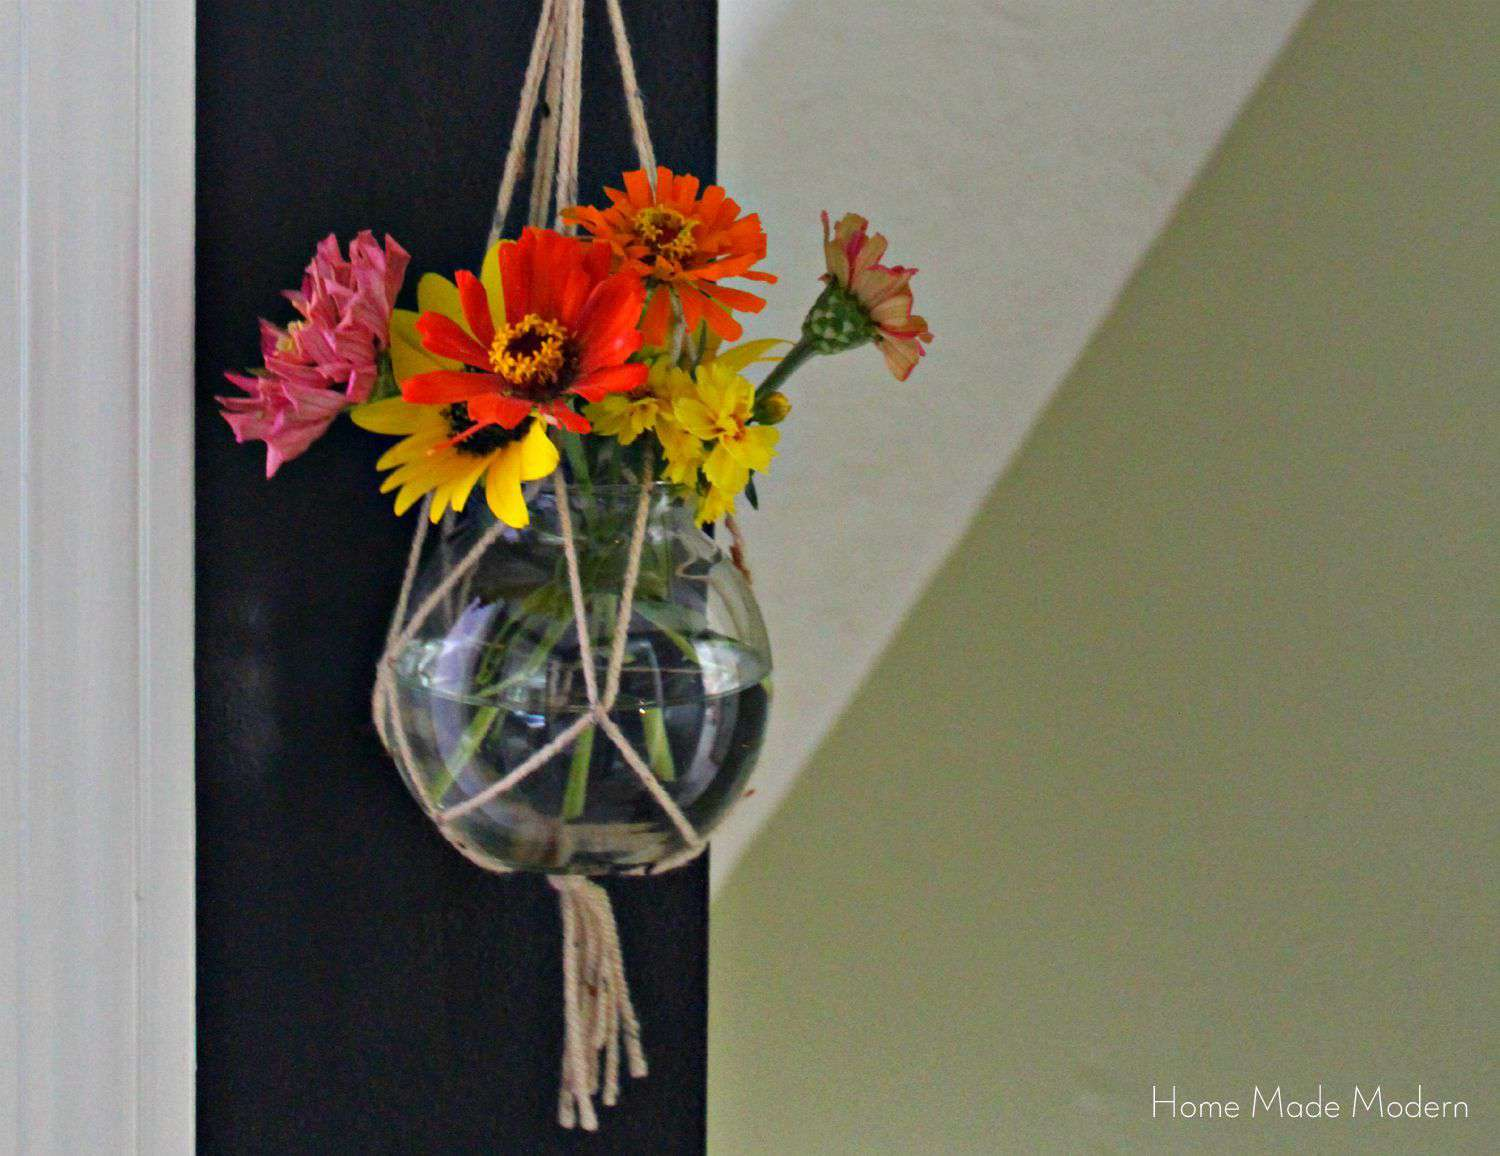 macrame hanging plant holder with flowers